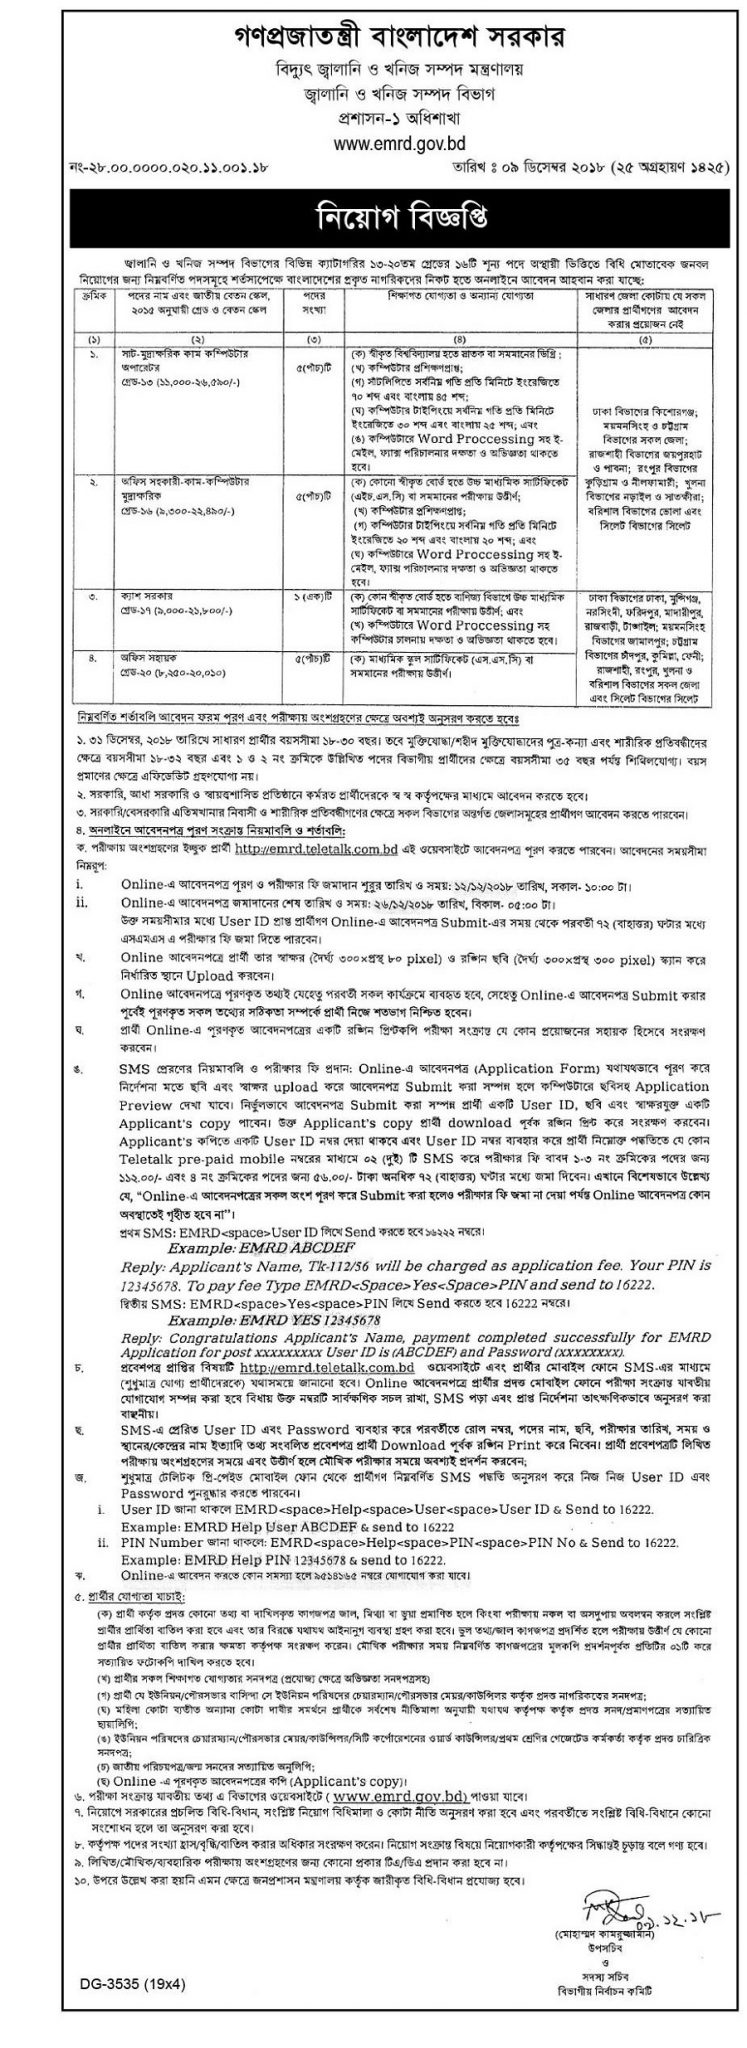 Energy and Mineral Resources Division Job Circular